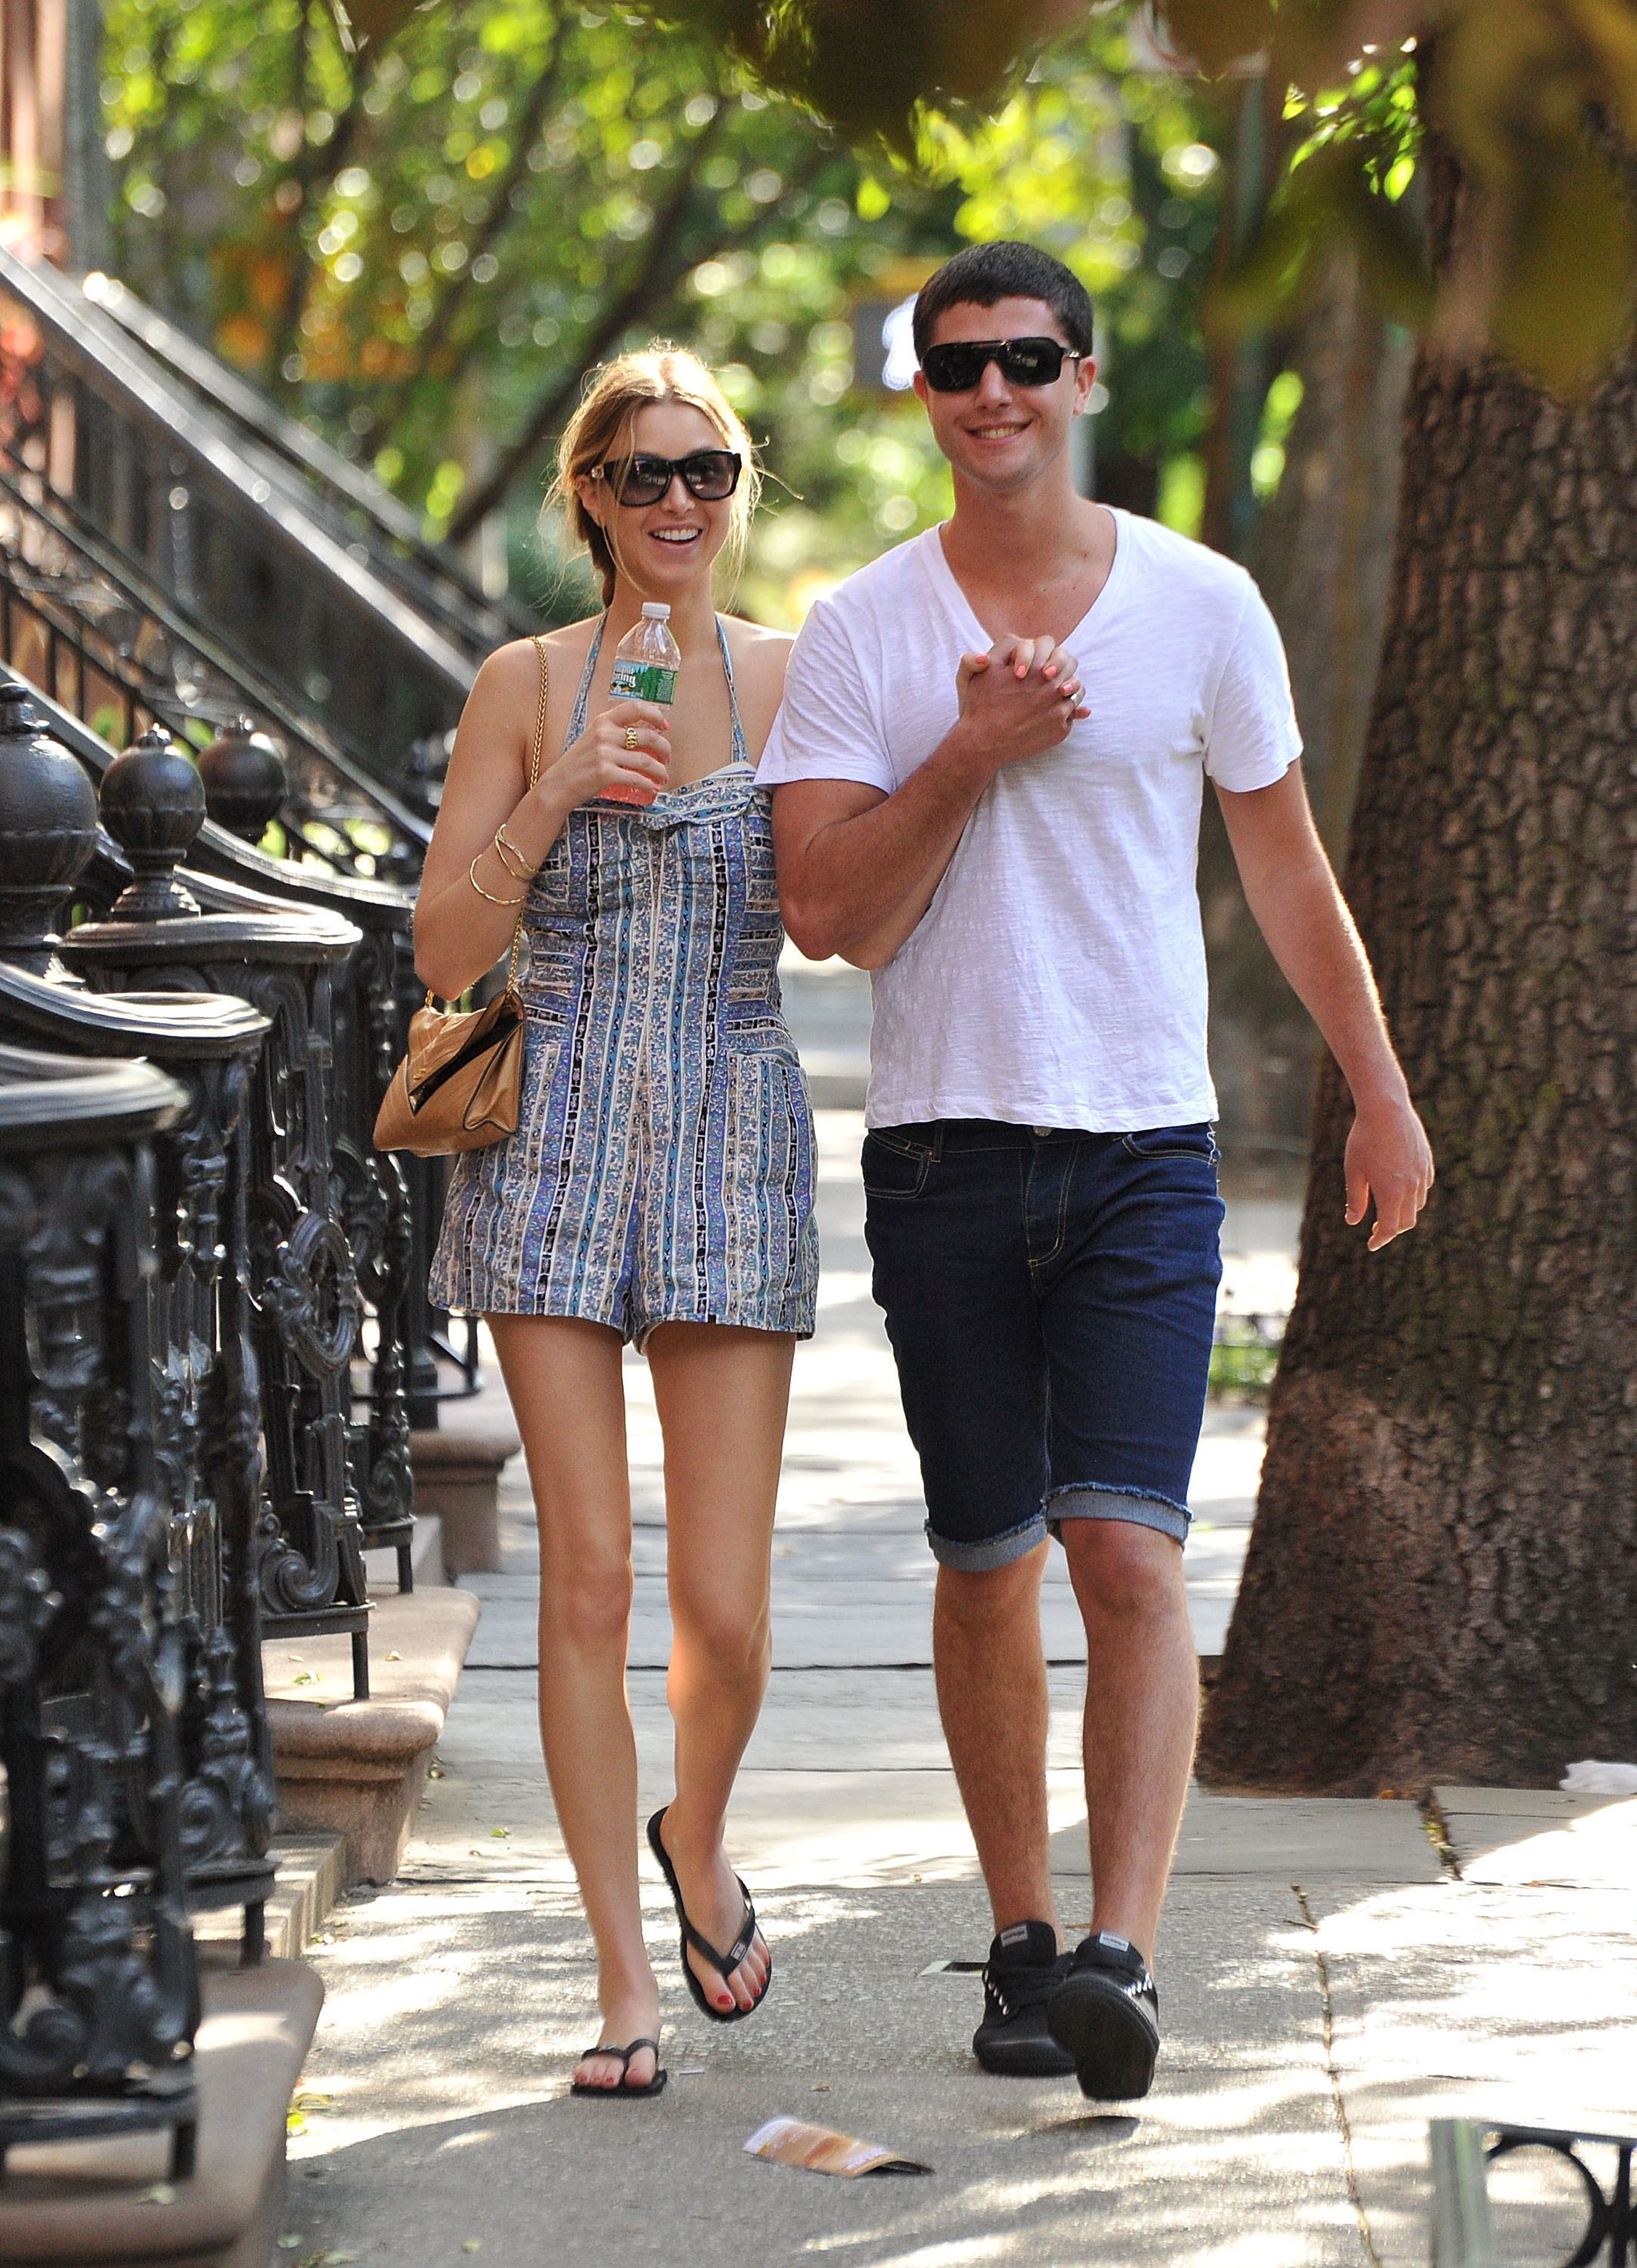 This is hot, NYC Summer style — Whitney in a sweet romper; Ben in denim.